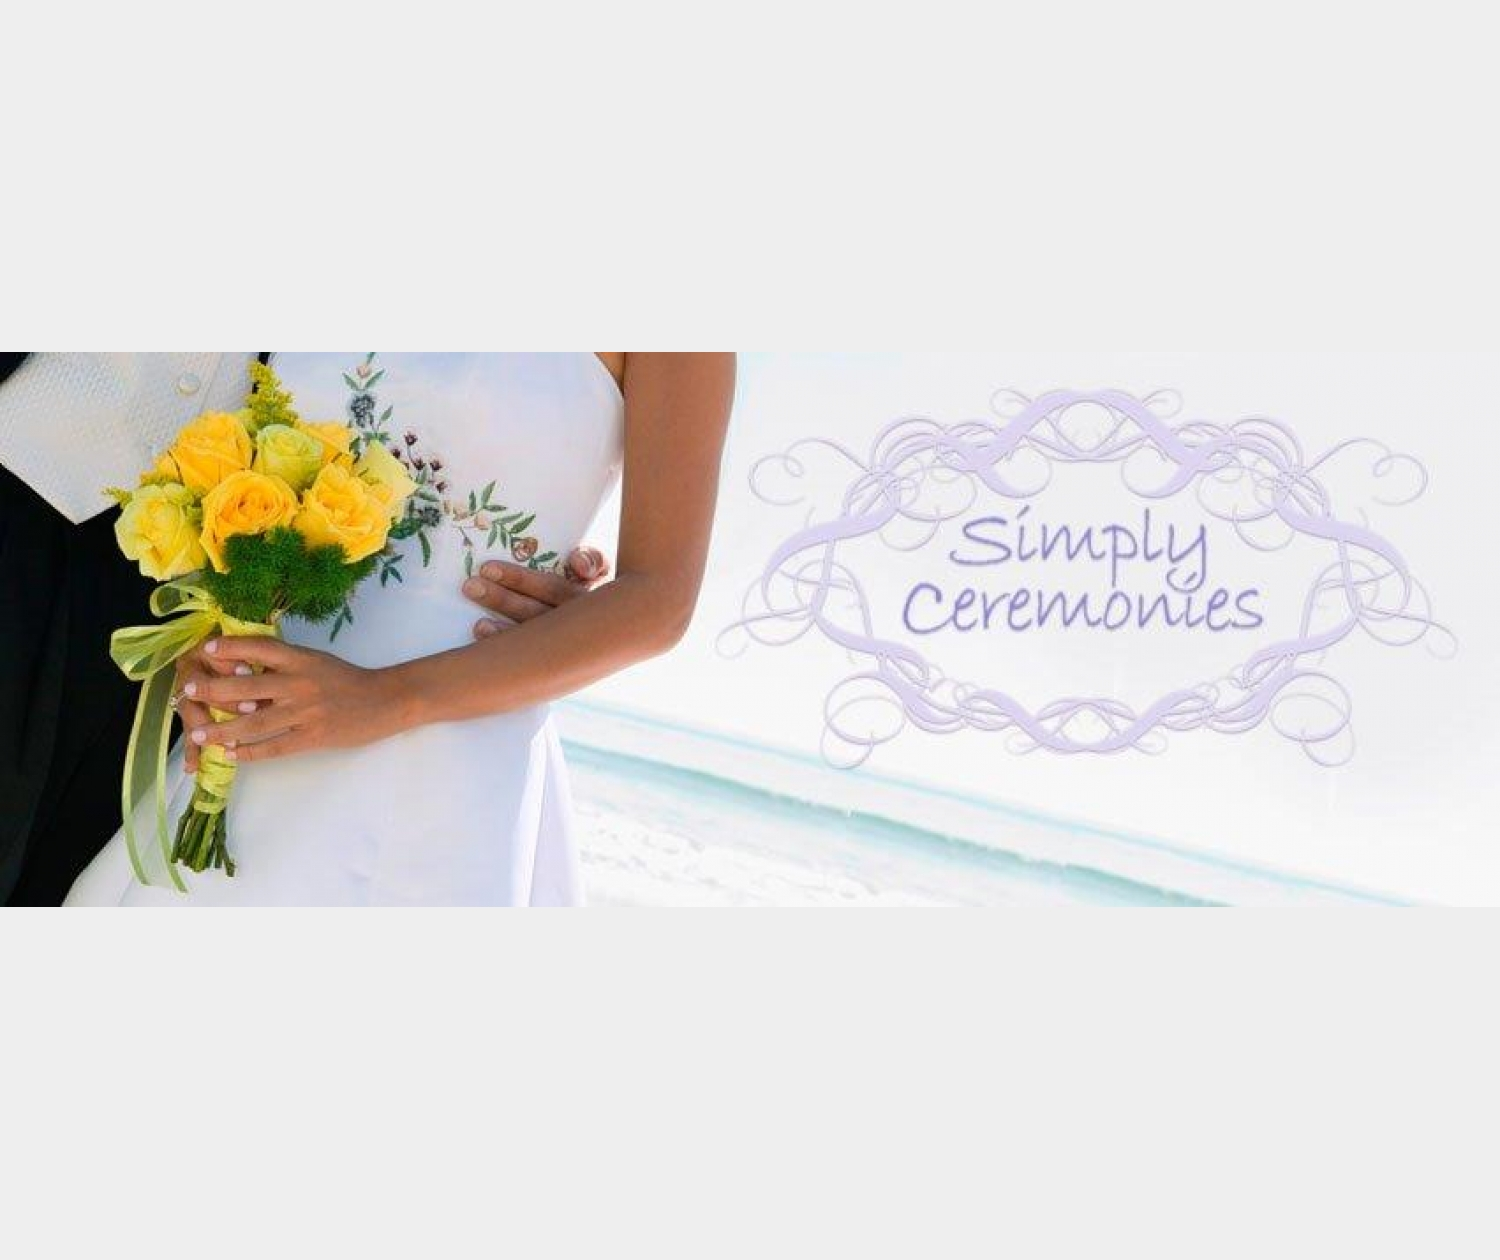 Simply Ceremonies